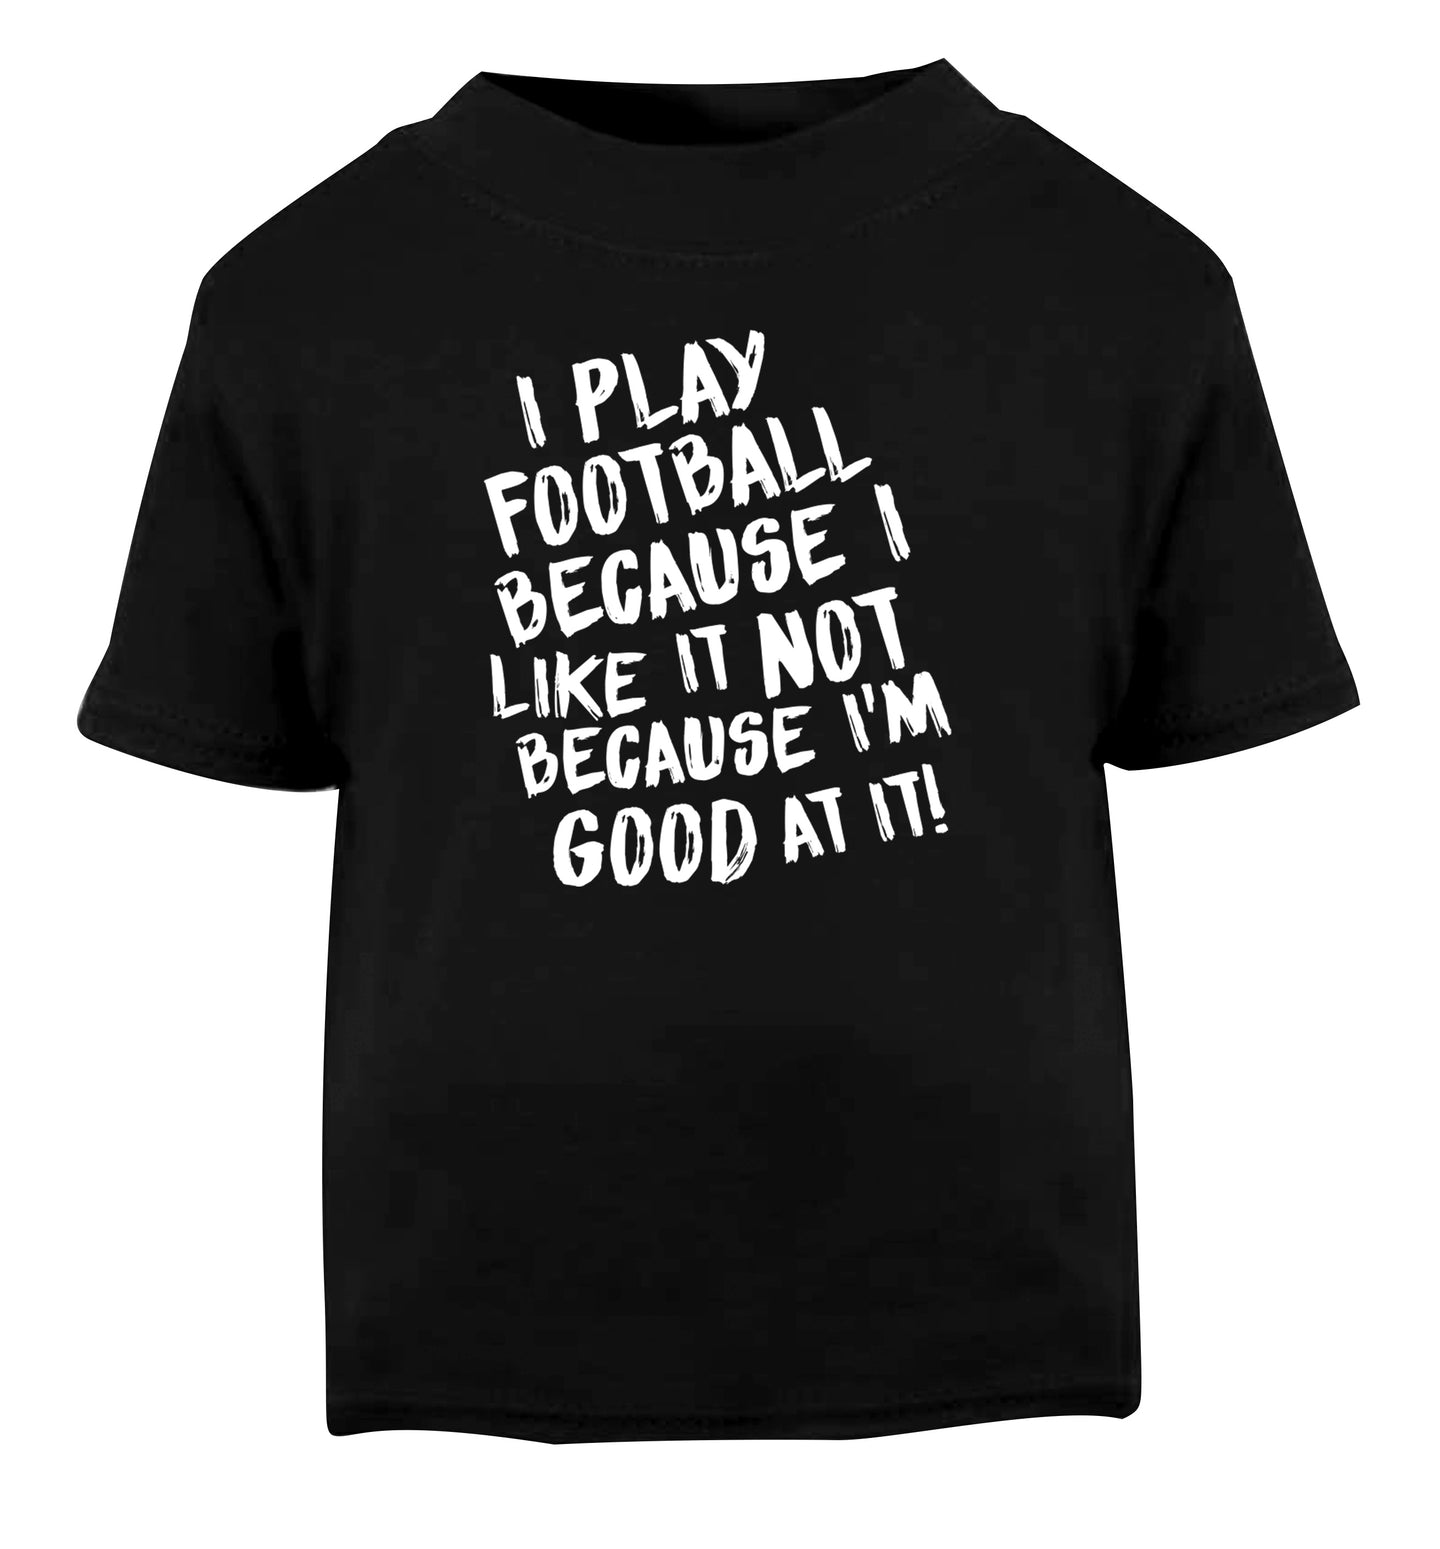 I play football because I like it not because I'm good at it Black Baby Toddler Tshirt 2 years